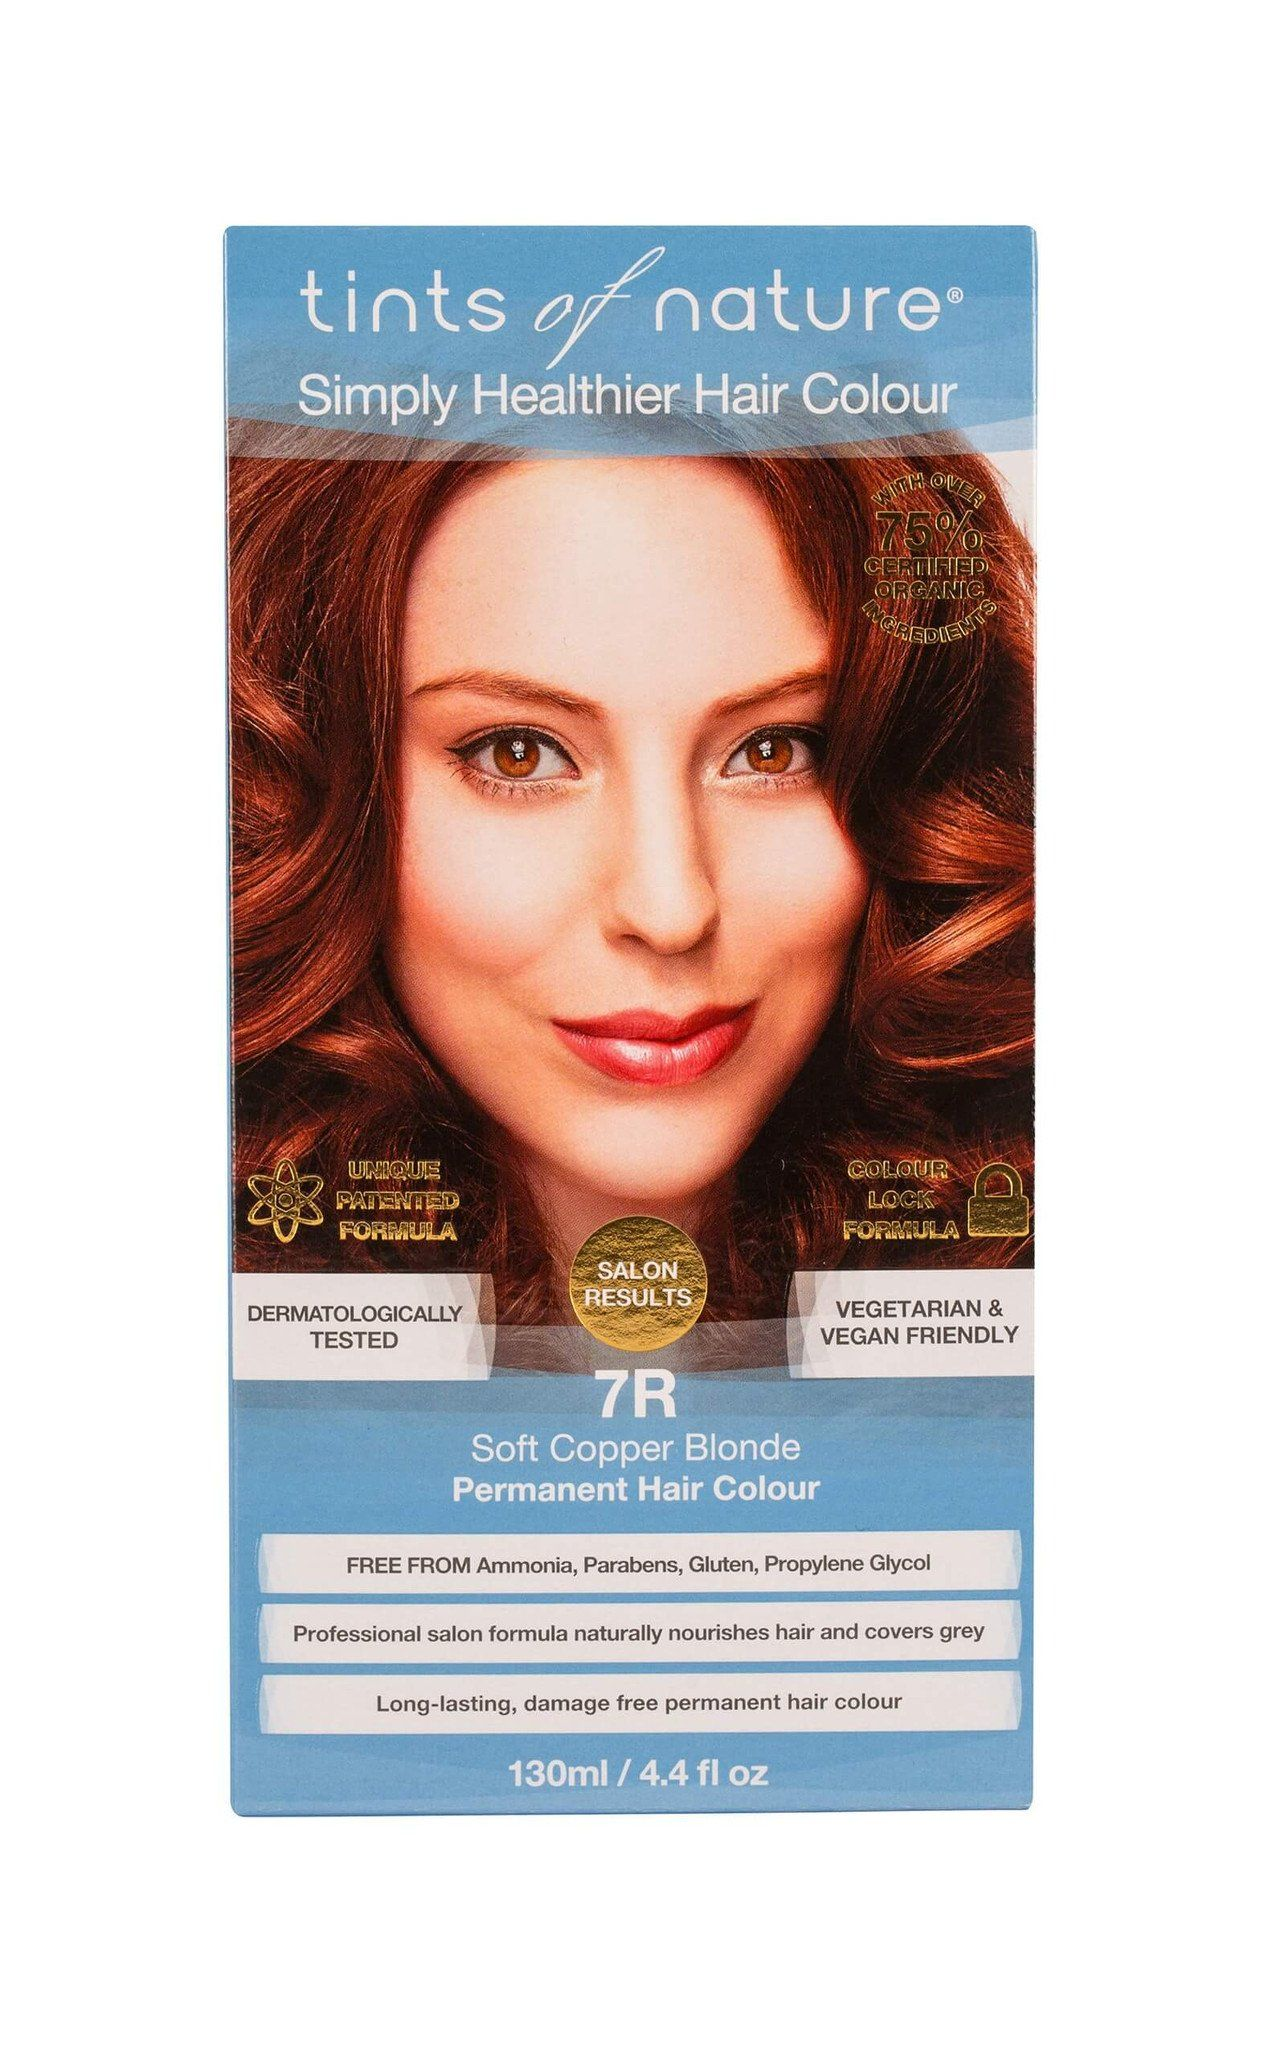 Beauty & Skin Care - Tints Of Nature - 7R Soft Copper Blonde, 130ml